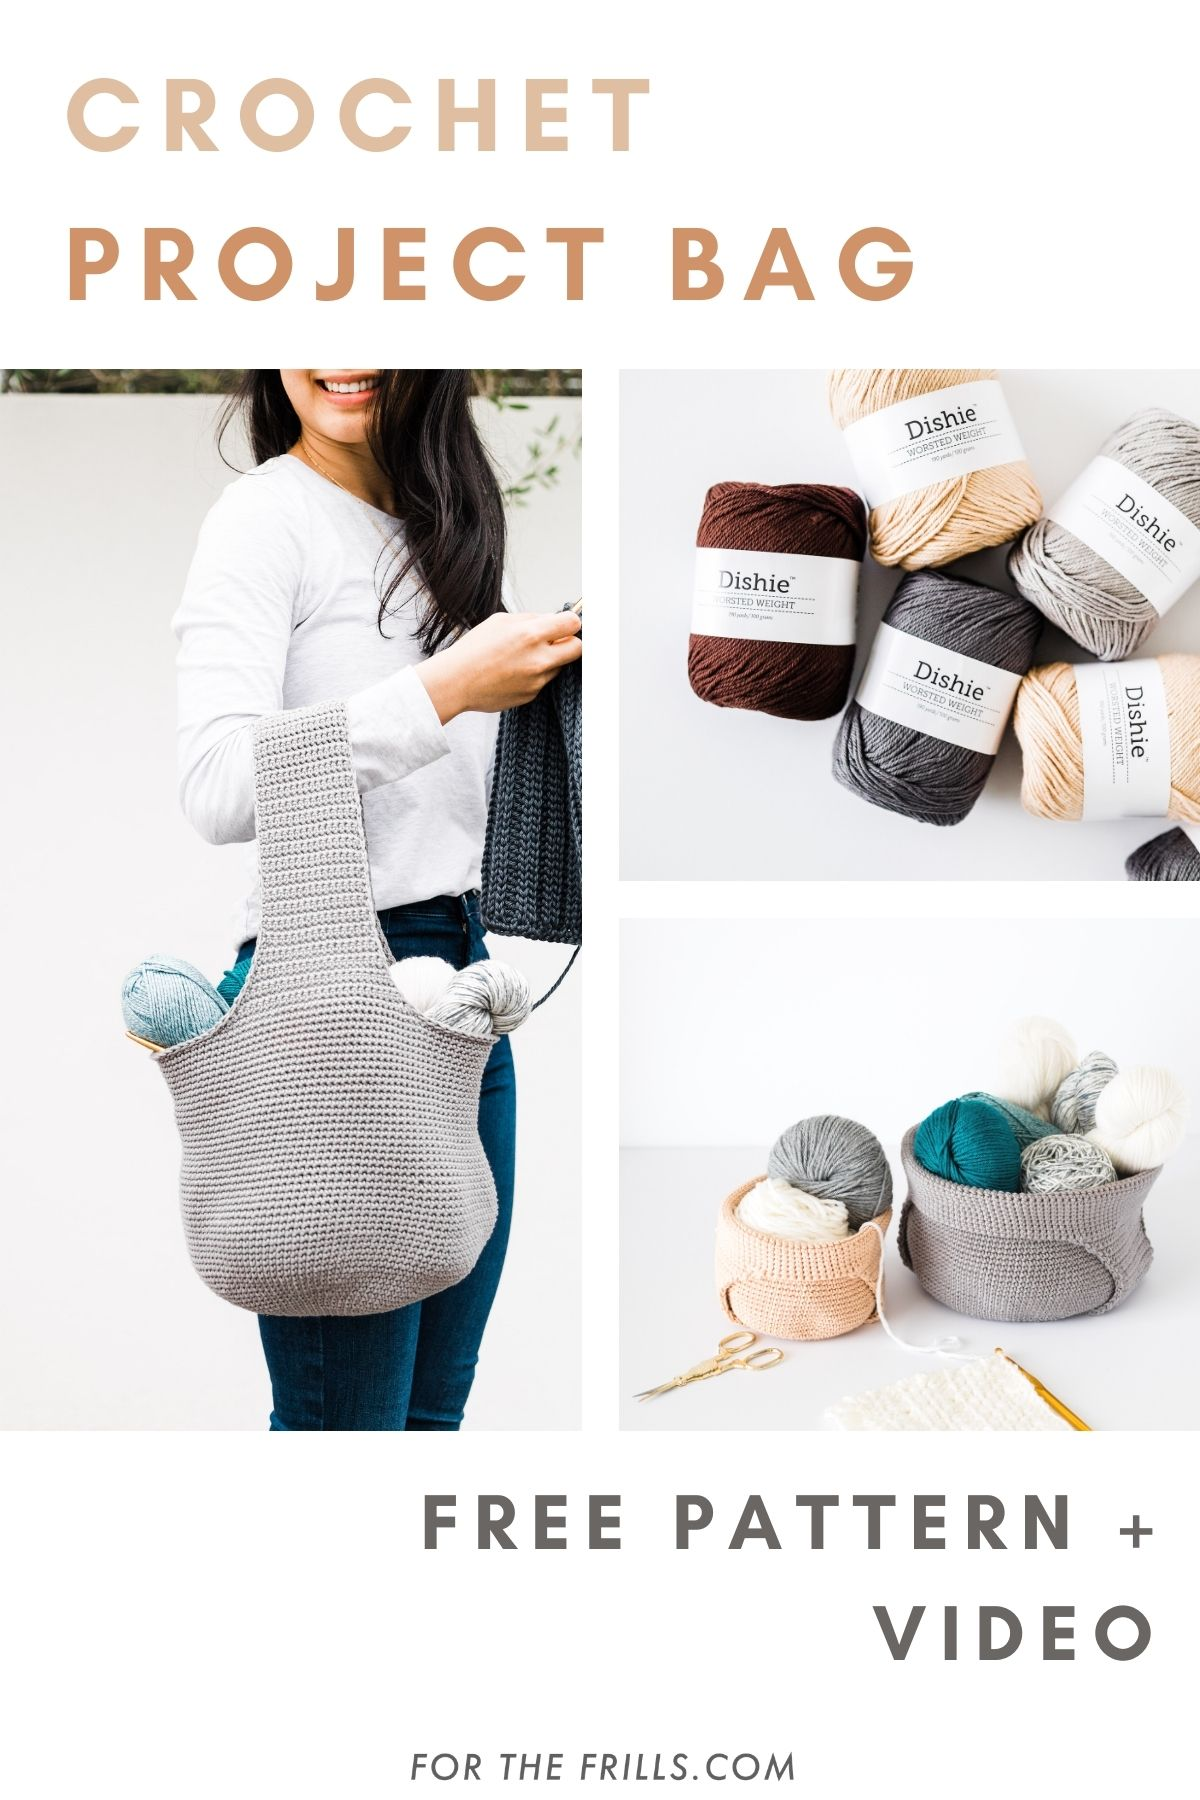 pinterest image of crochet project bag and yarn baskets with free pattern and video text